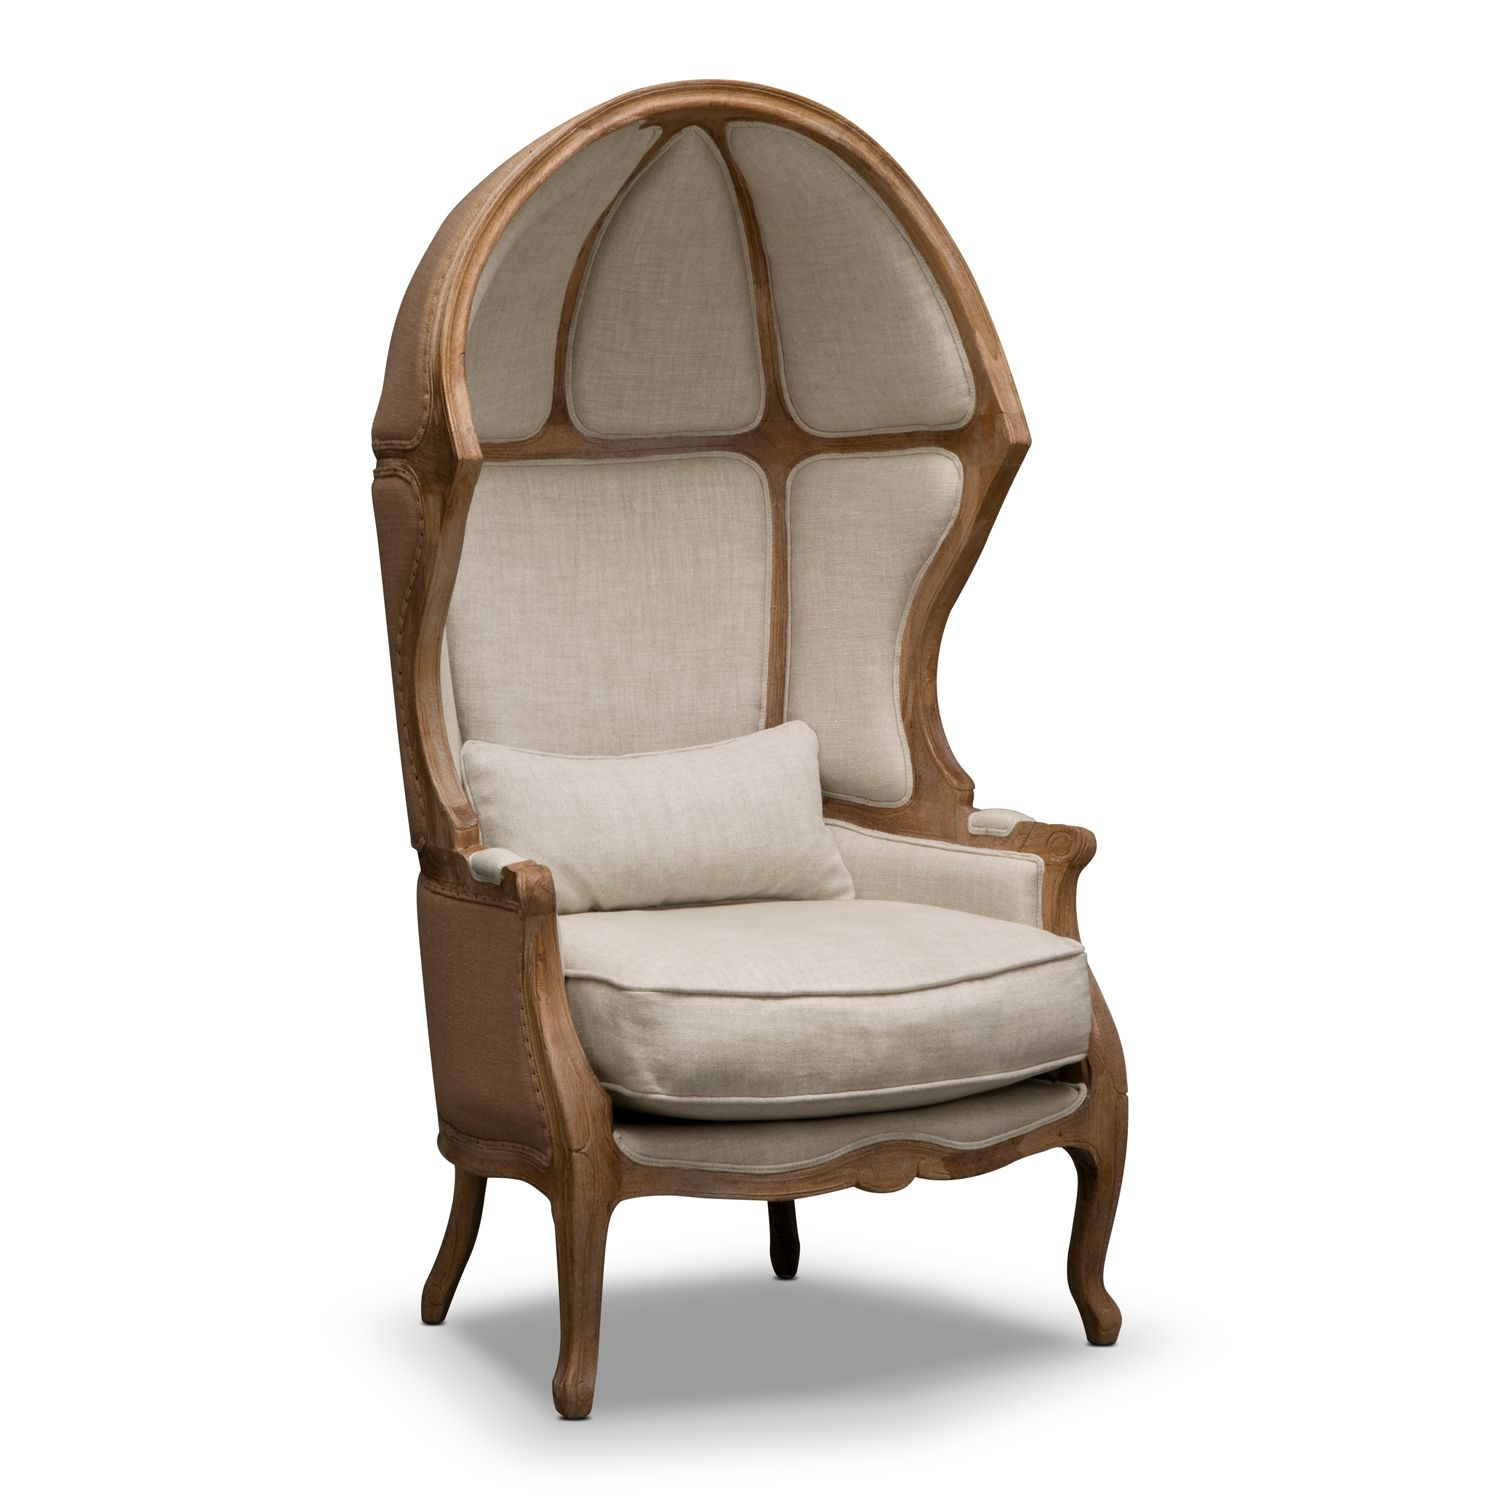 Living Room Accent Furniture Marquette Beige Upholstery Dome Accent Chair Furniturecom